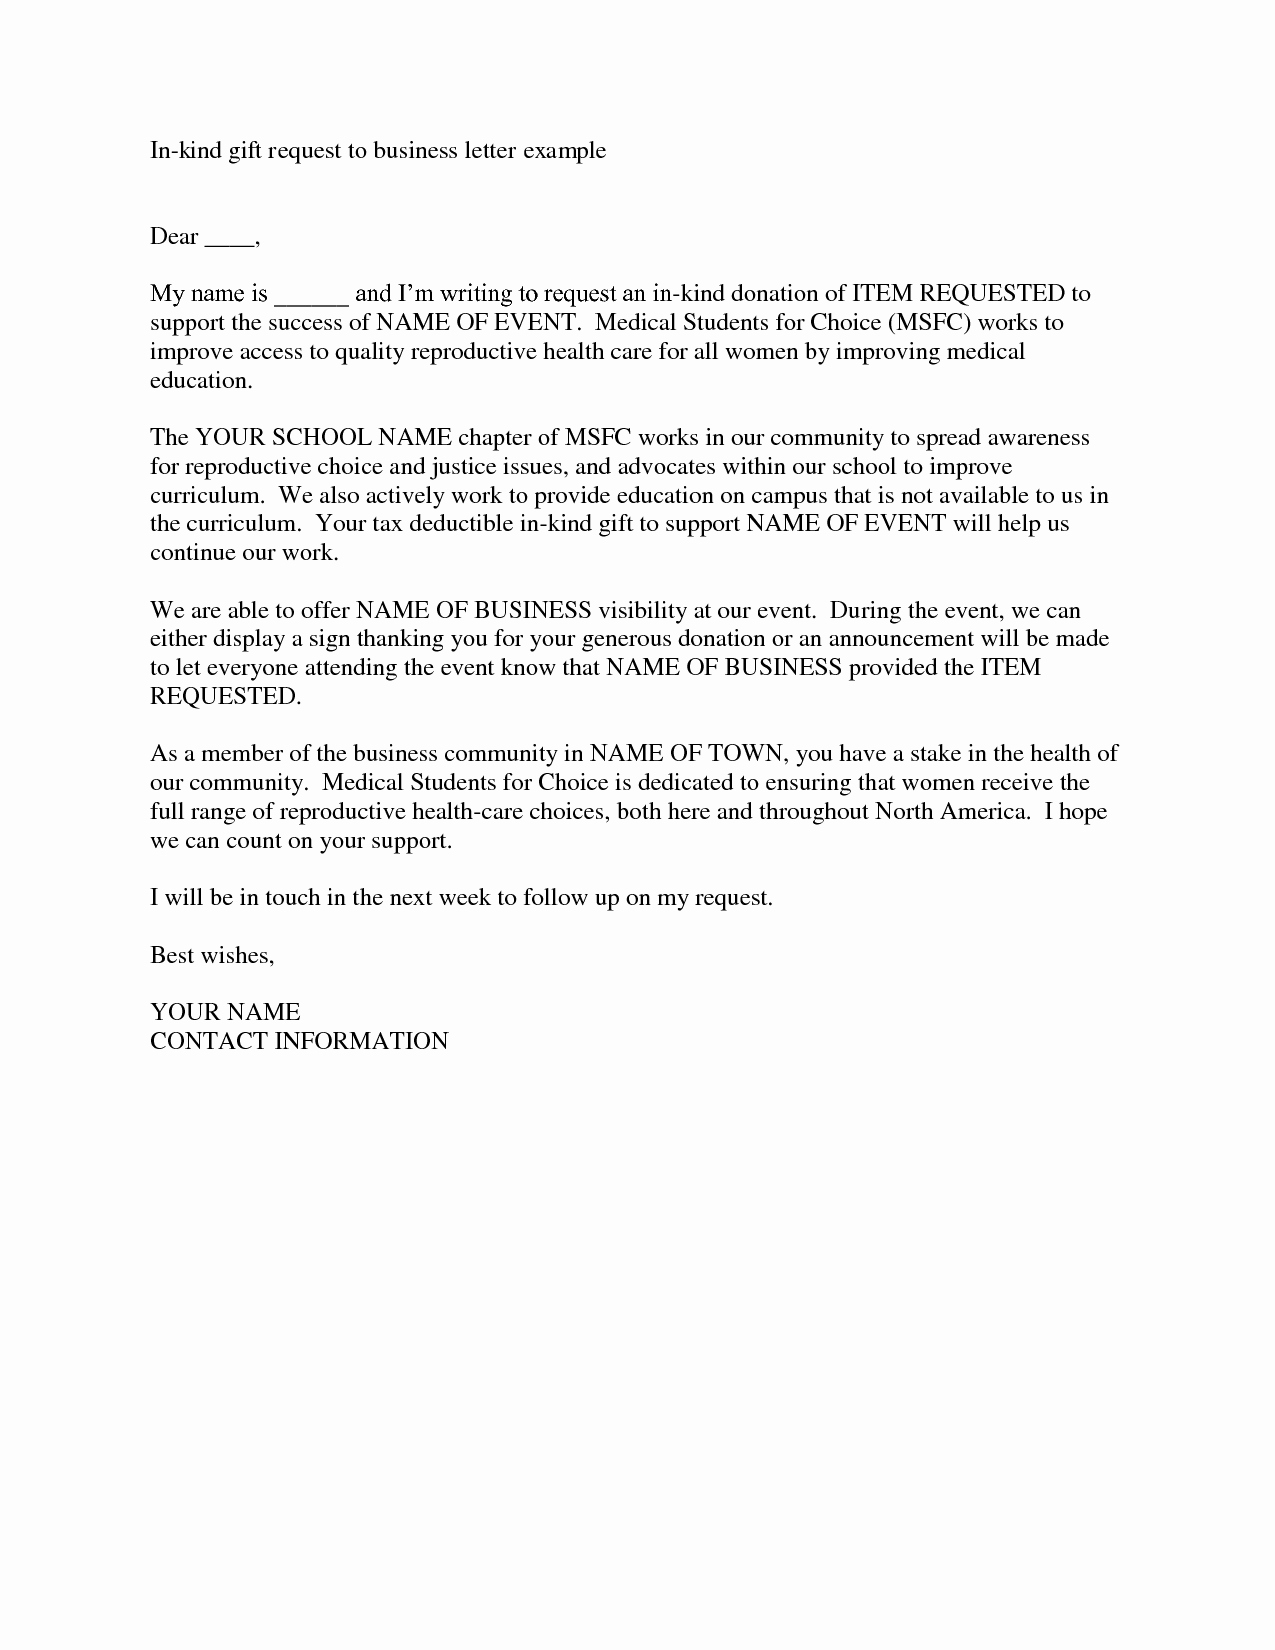 School Donation Request Letter Template - Sample Donation Request Letter for School New Fundraising Thank You